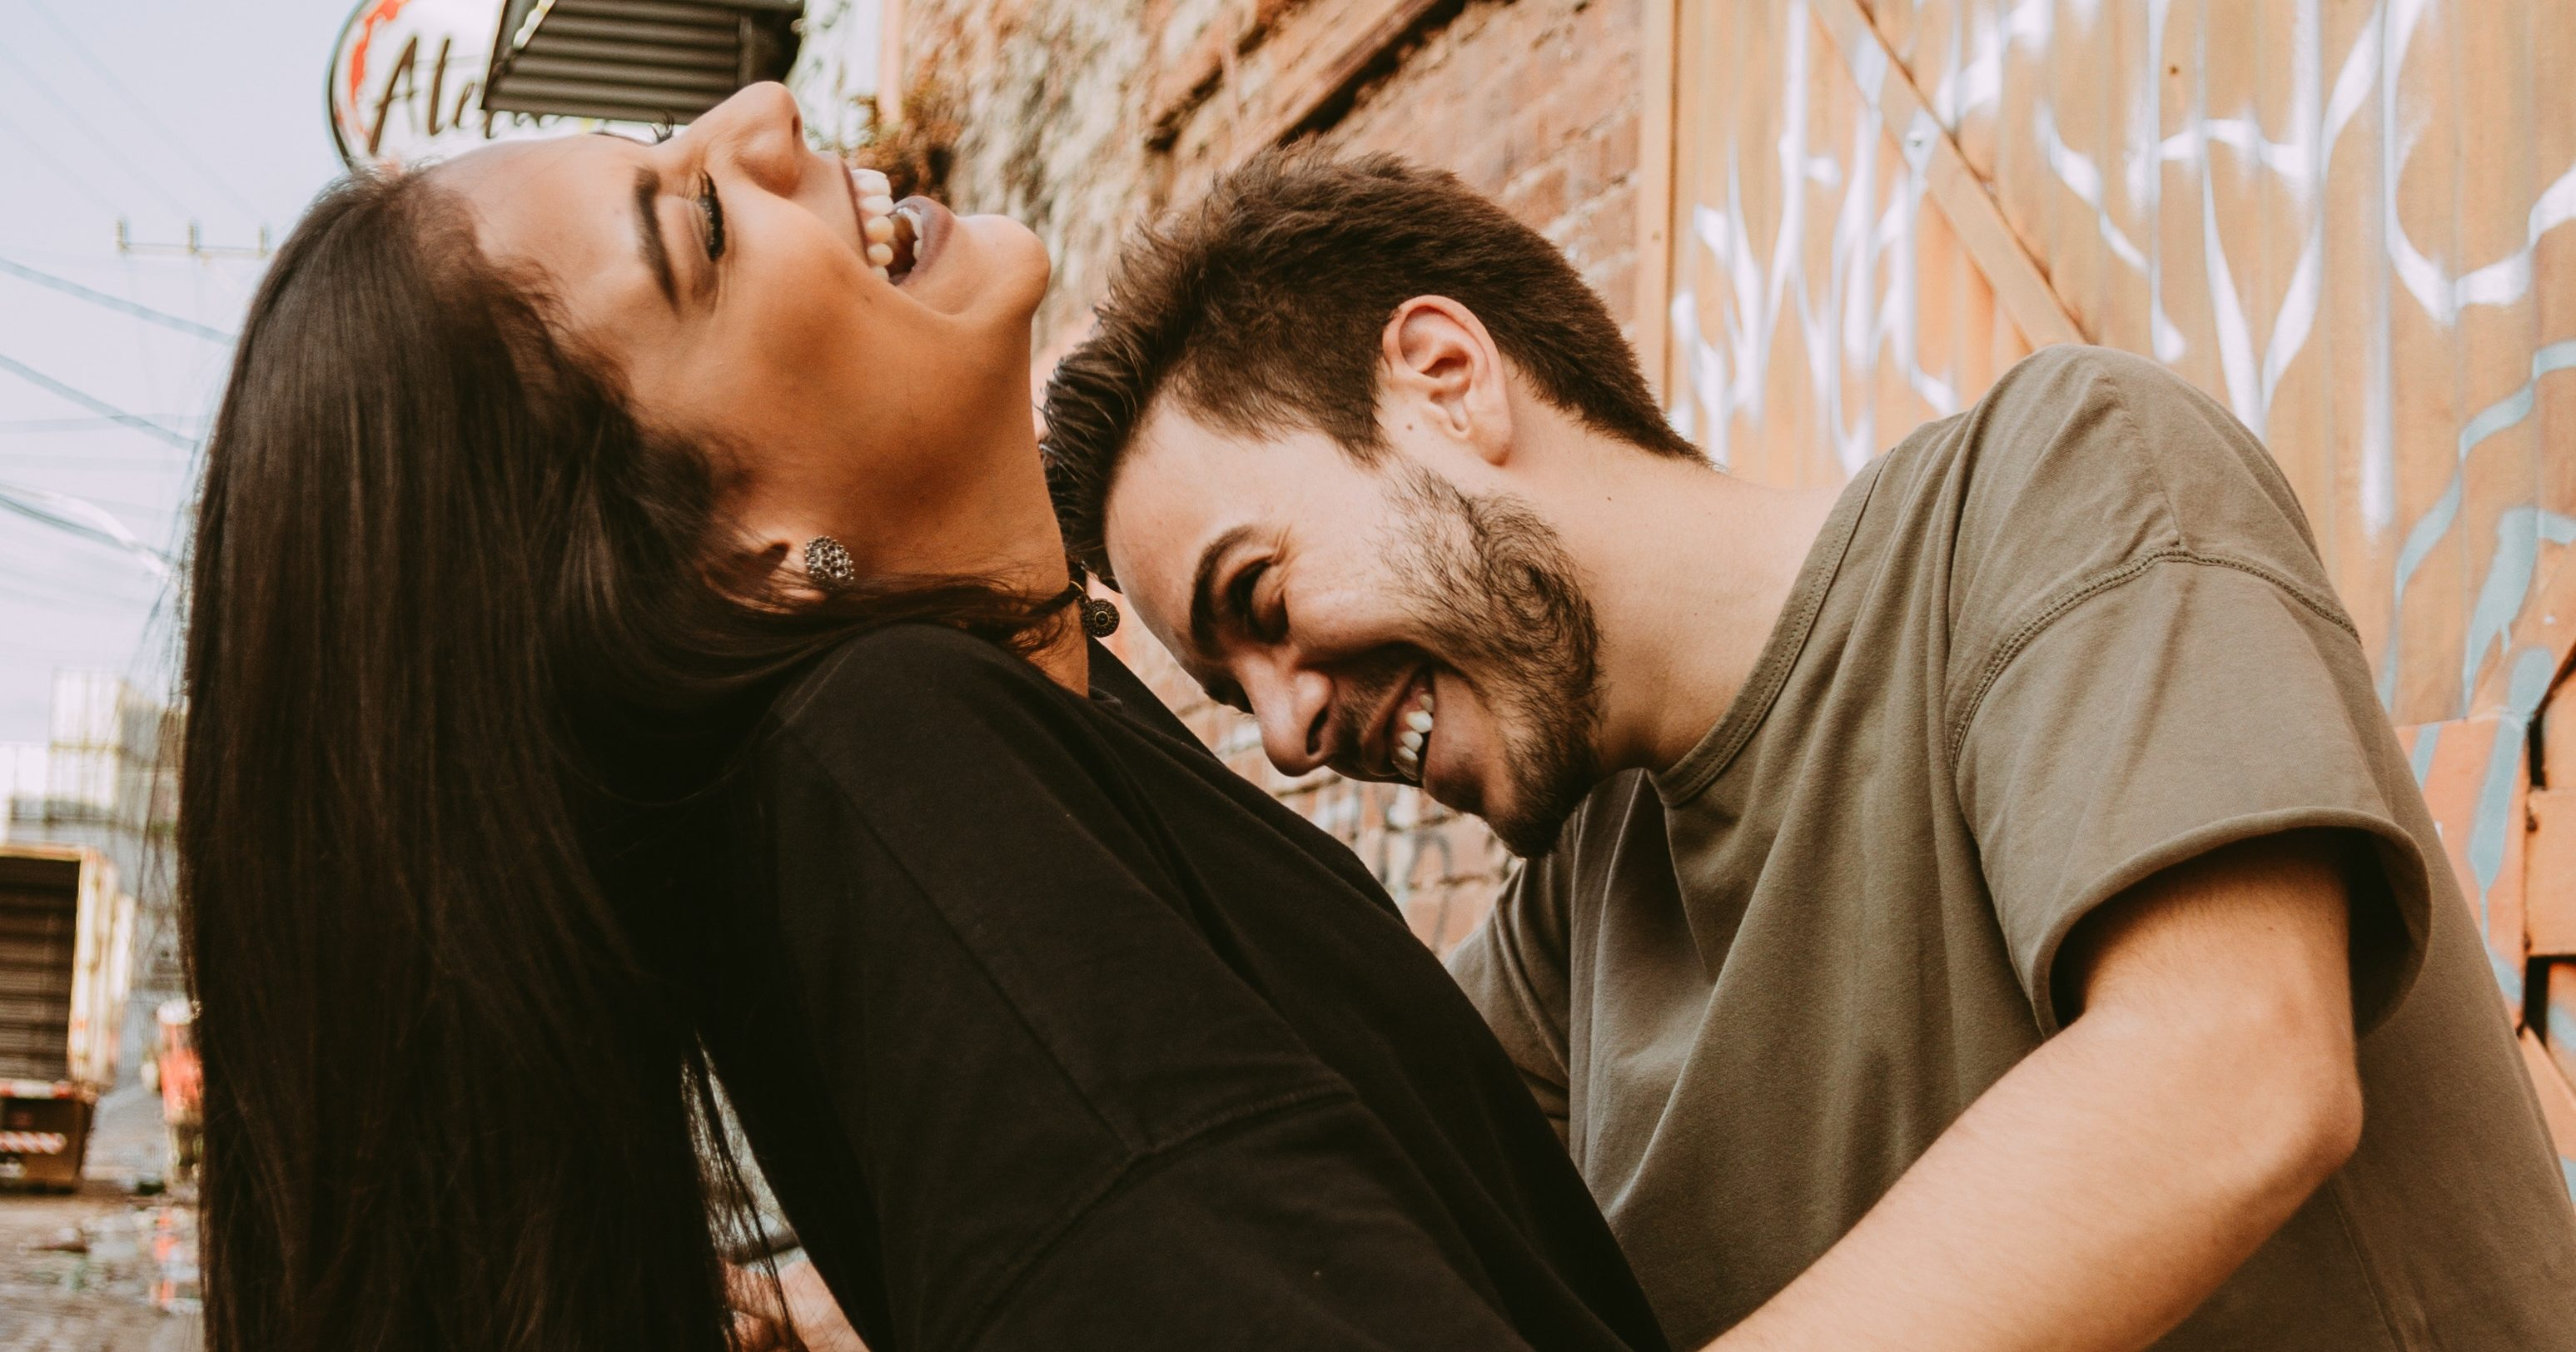 Couple in urban environment laughing